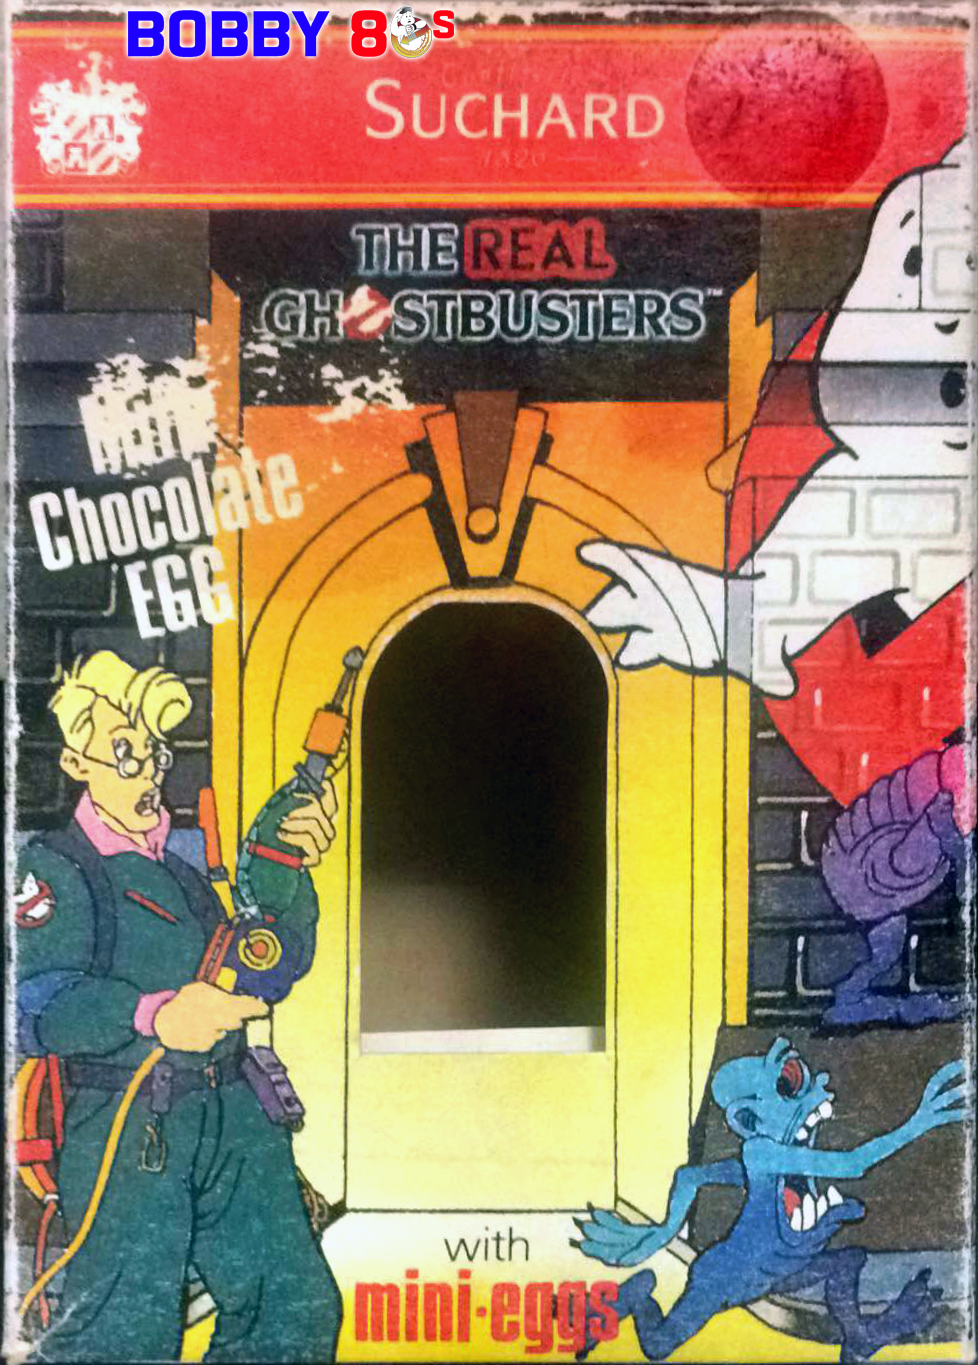 Jacobs Suchard The Real Ghostbusters confectioneries products line